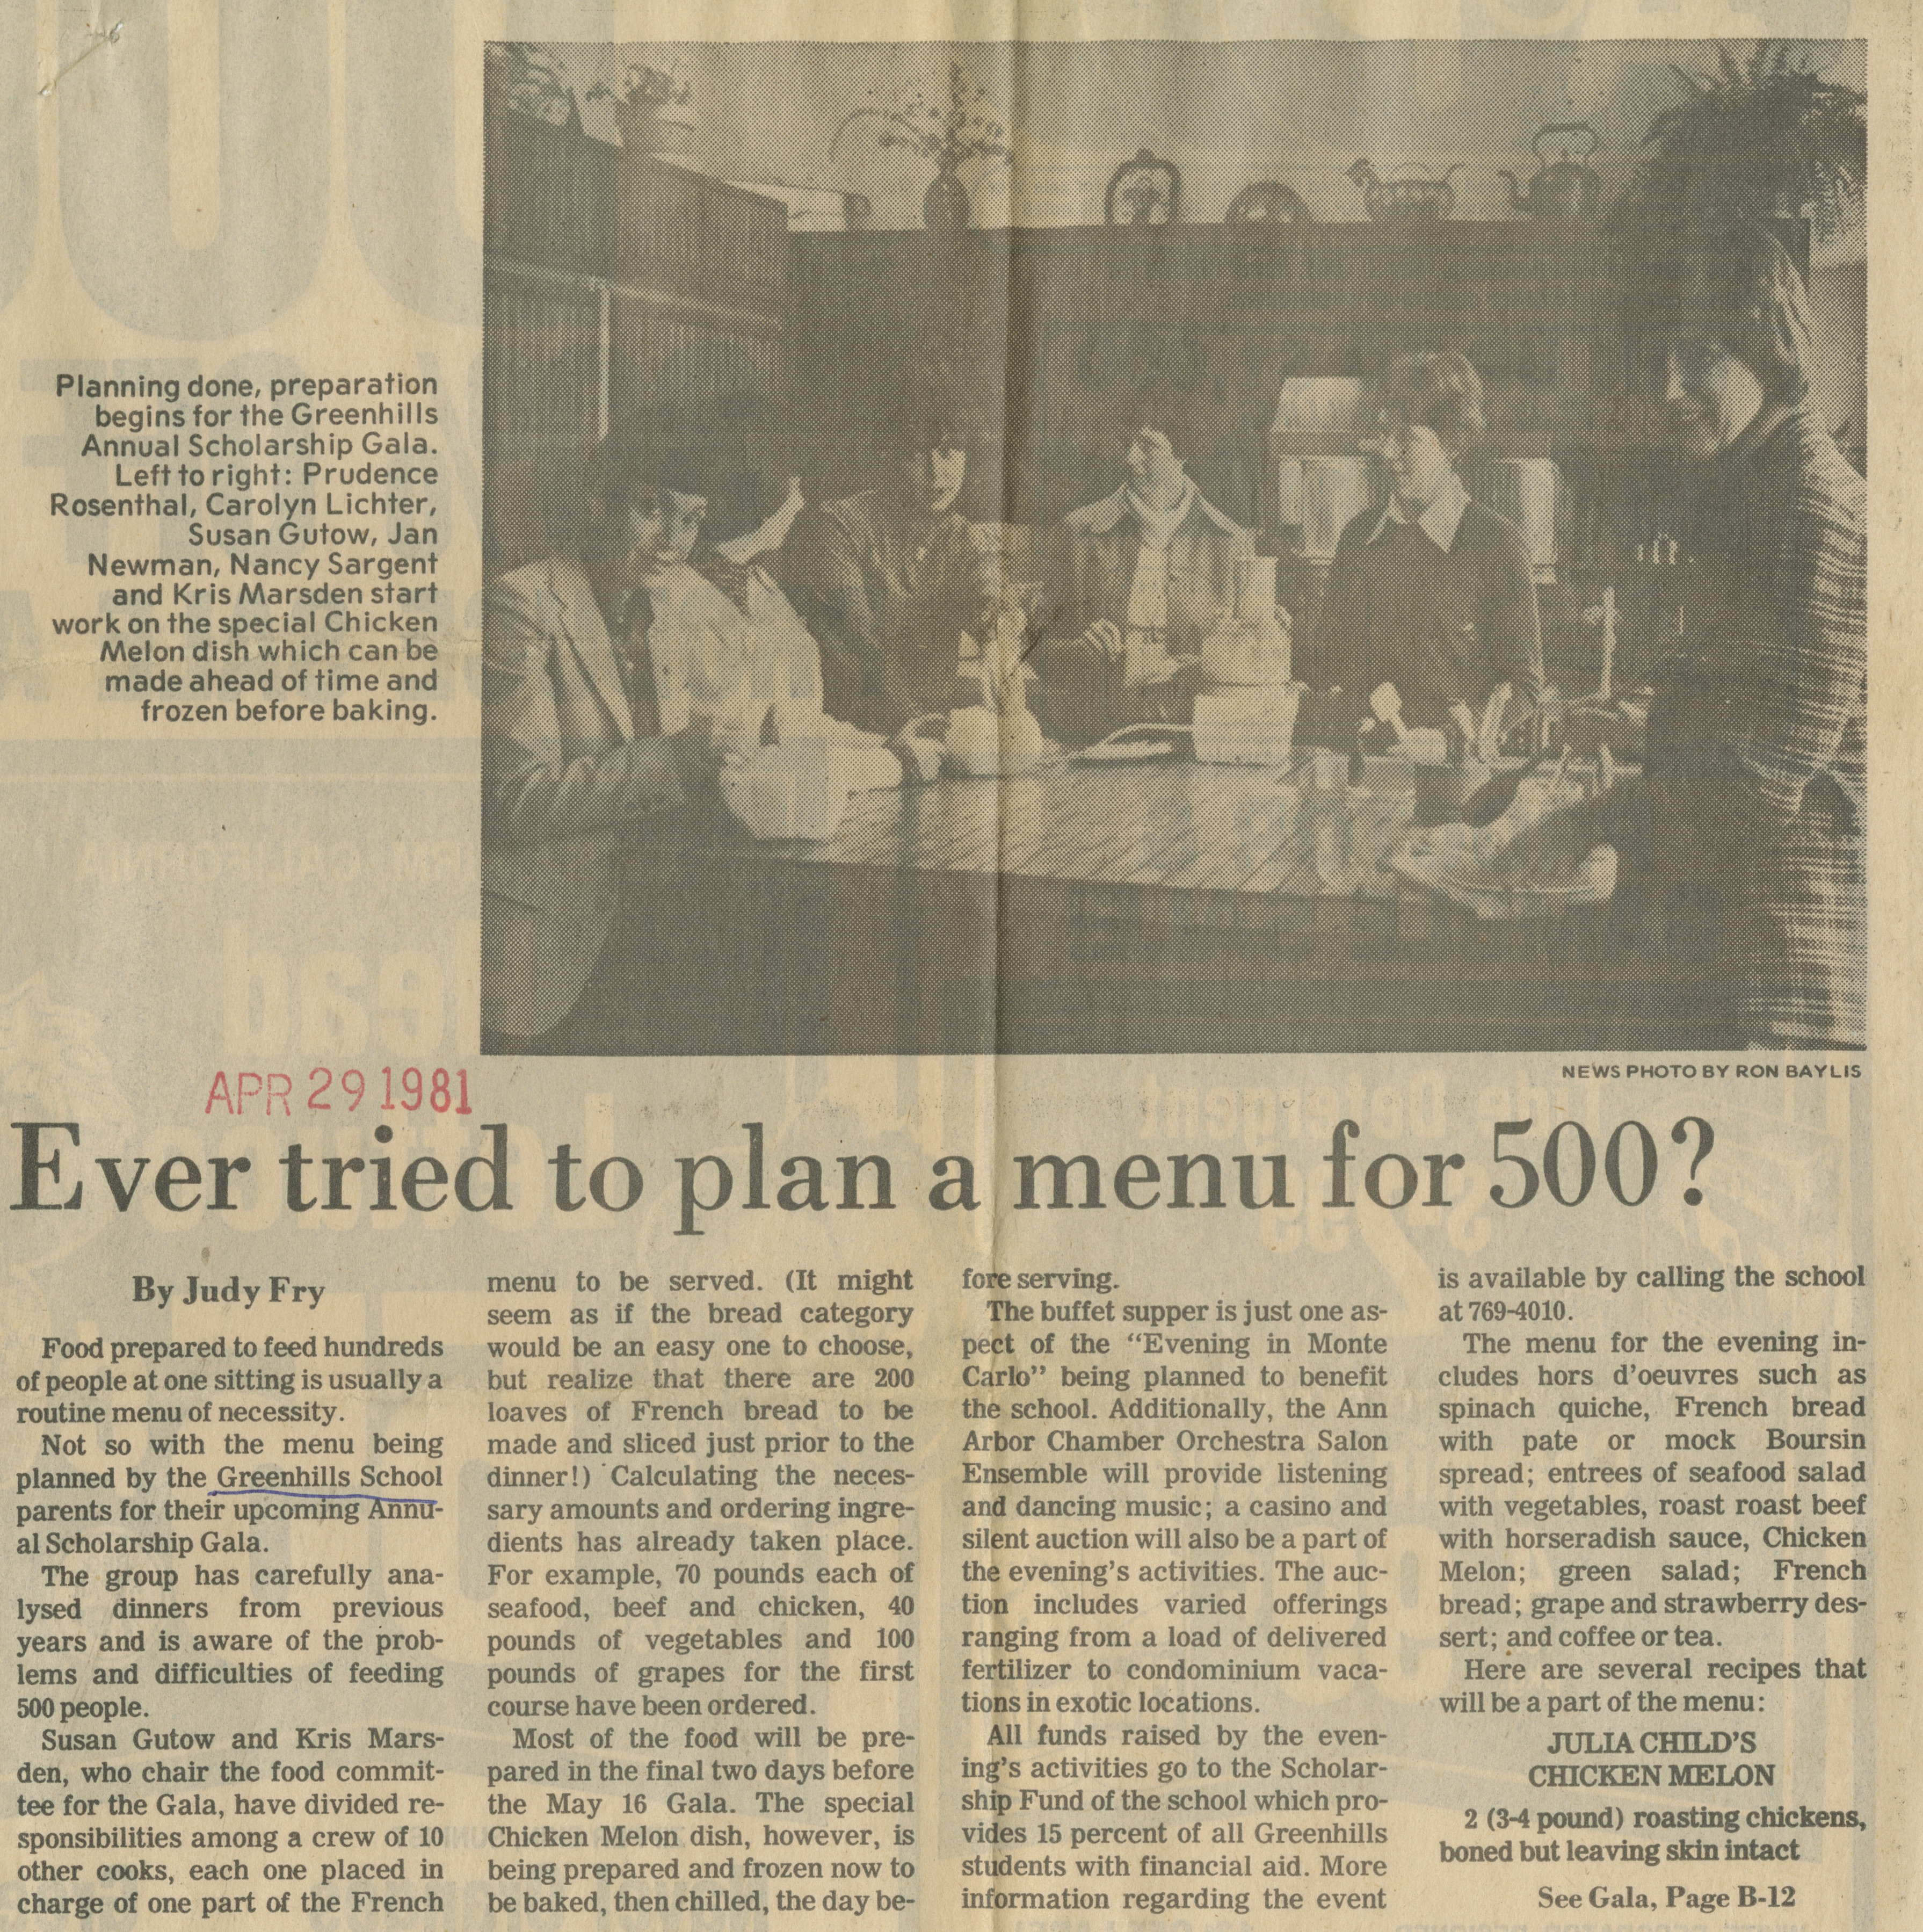 Ever Tried To Plan A Menu For 500? image